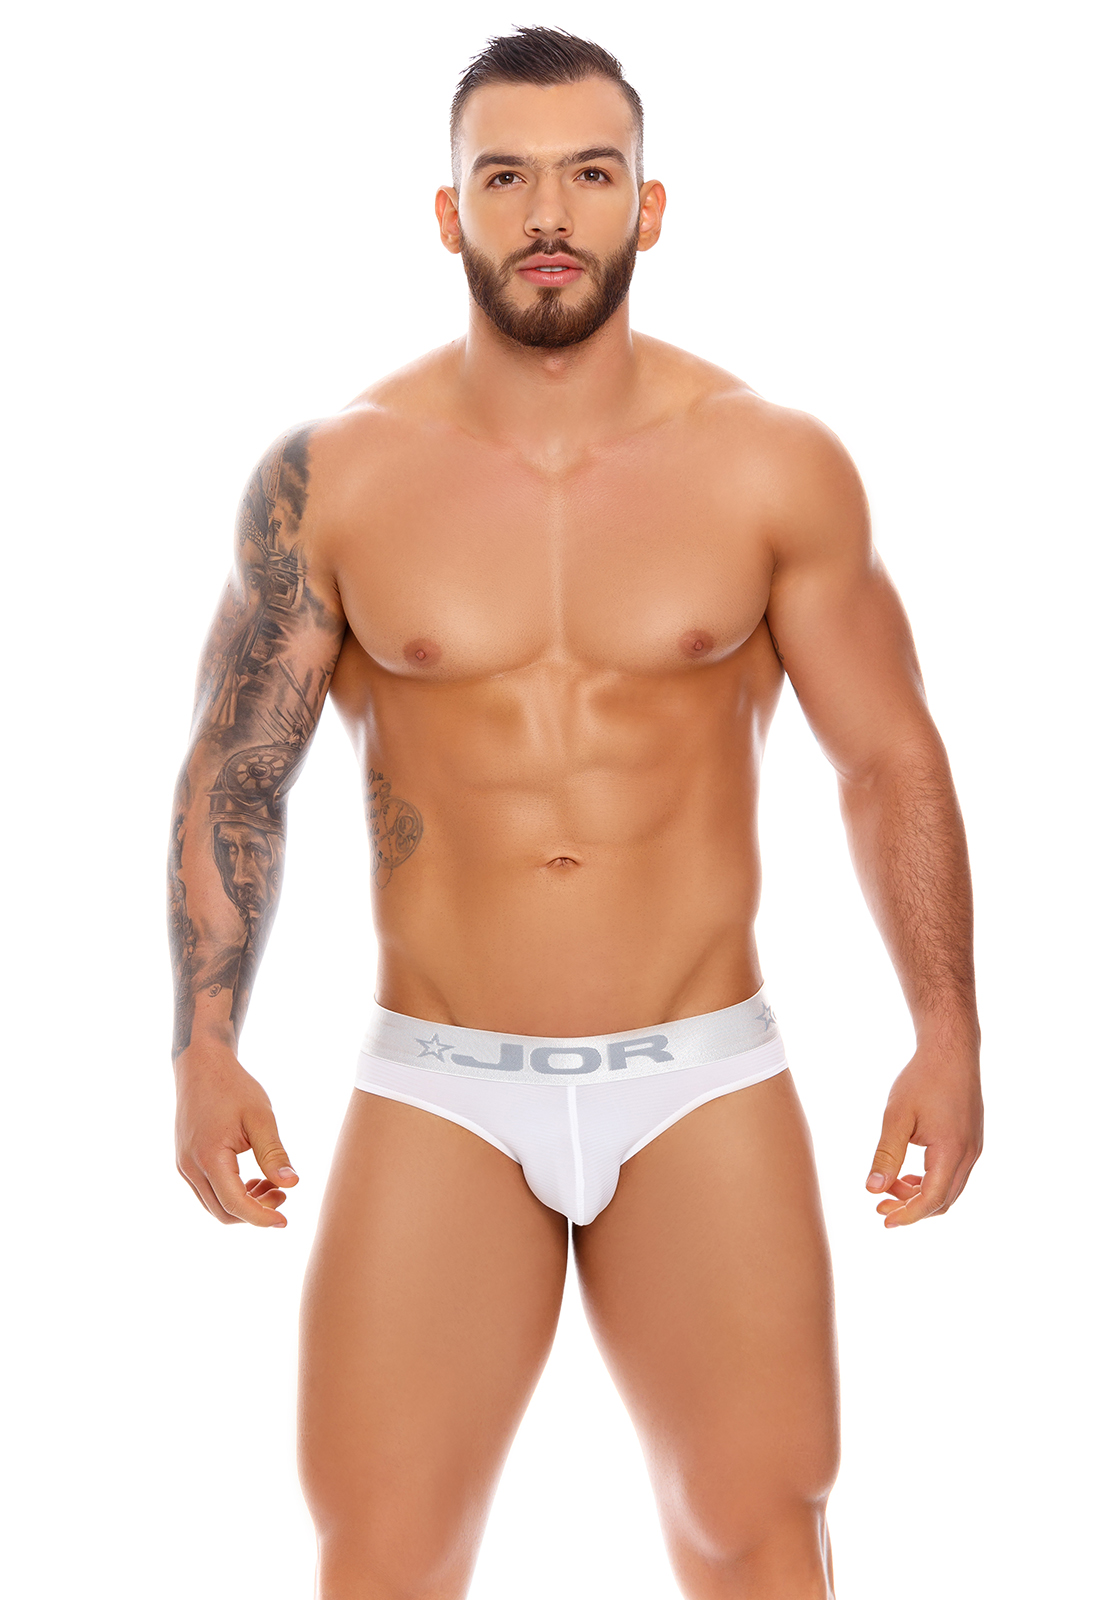 JOR Brief Odeon | White